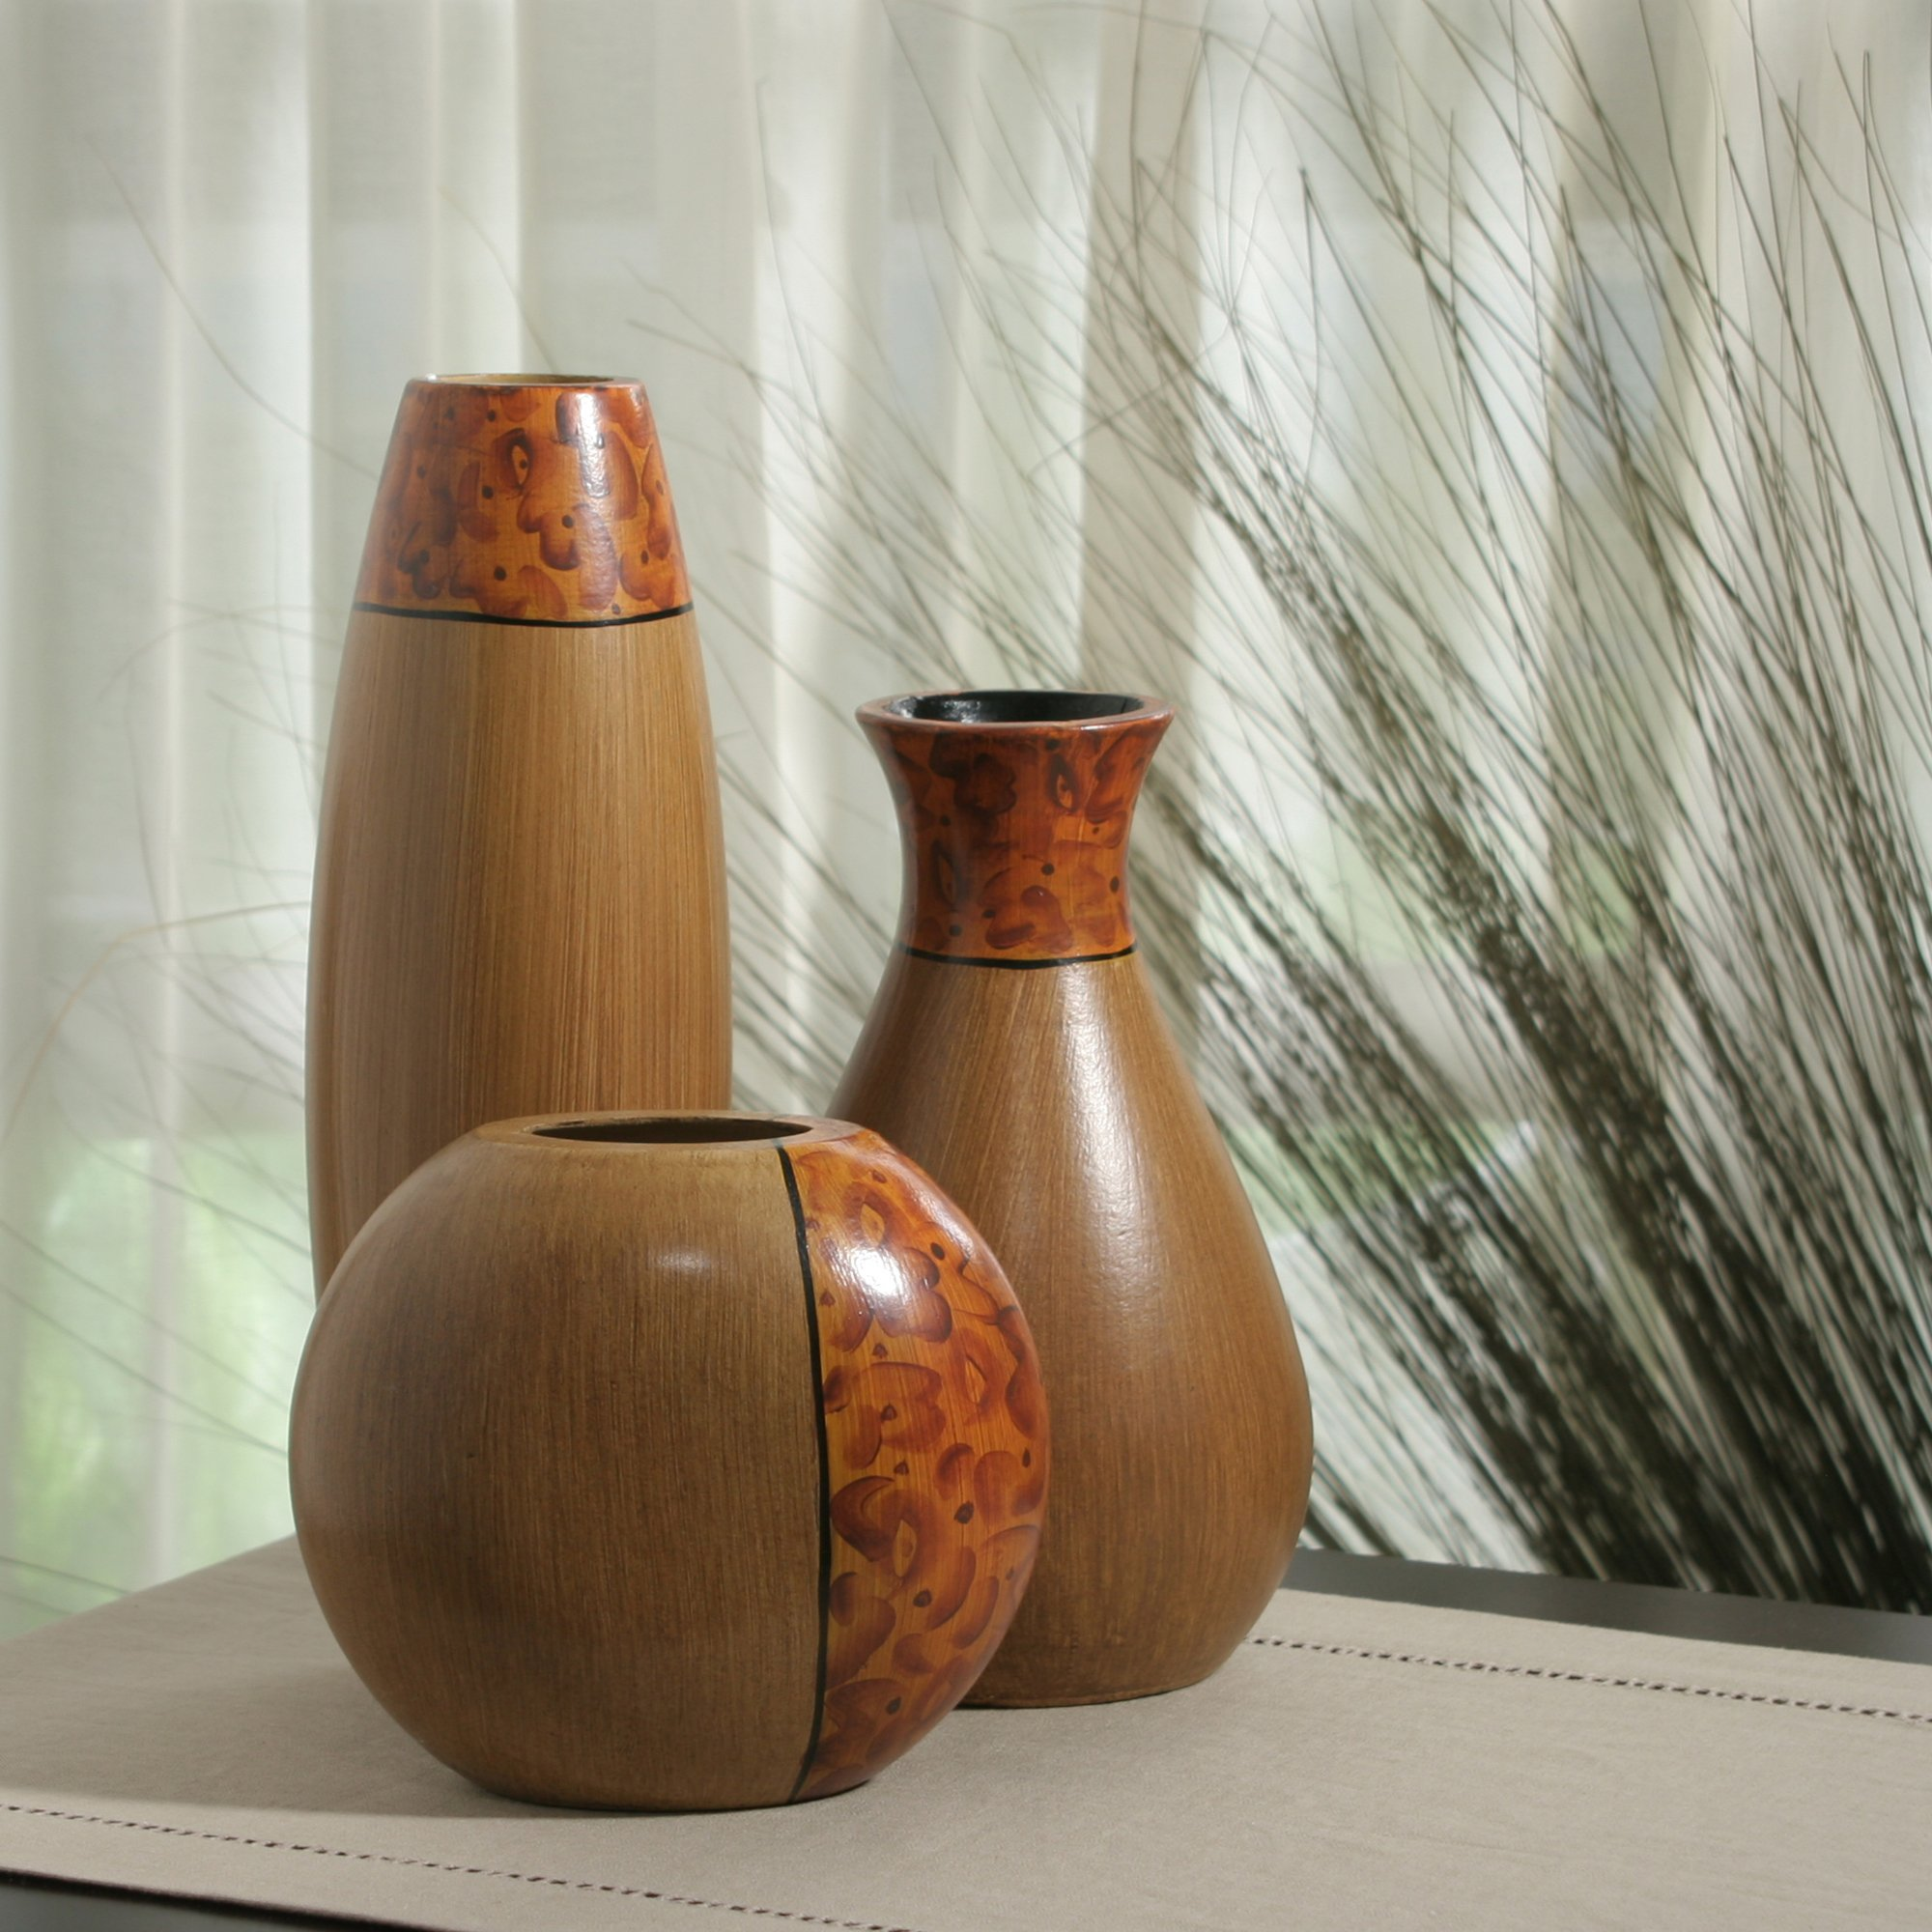 Hosley's Set of 3 Burlwood Vases. Ideal Gift for Wedding or Special Occasion and for Home Office, Decor, Floor Vases, Spa, Aromatherapy Settings O3 by Hosley (Image #4)